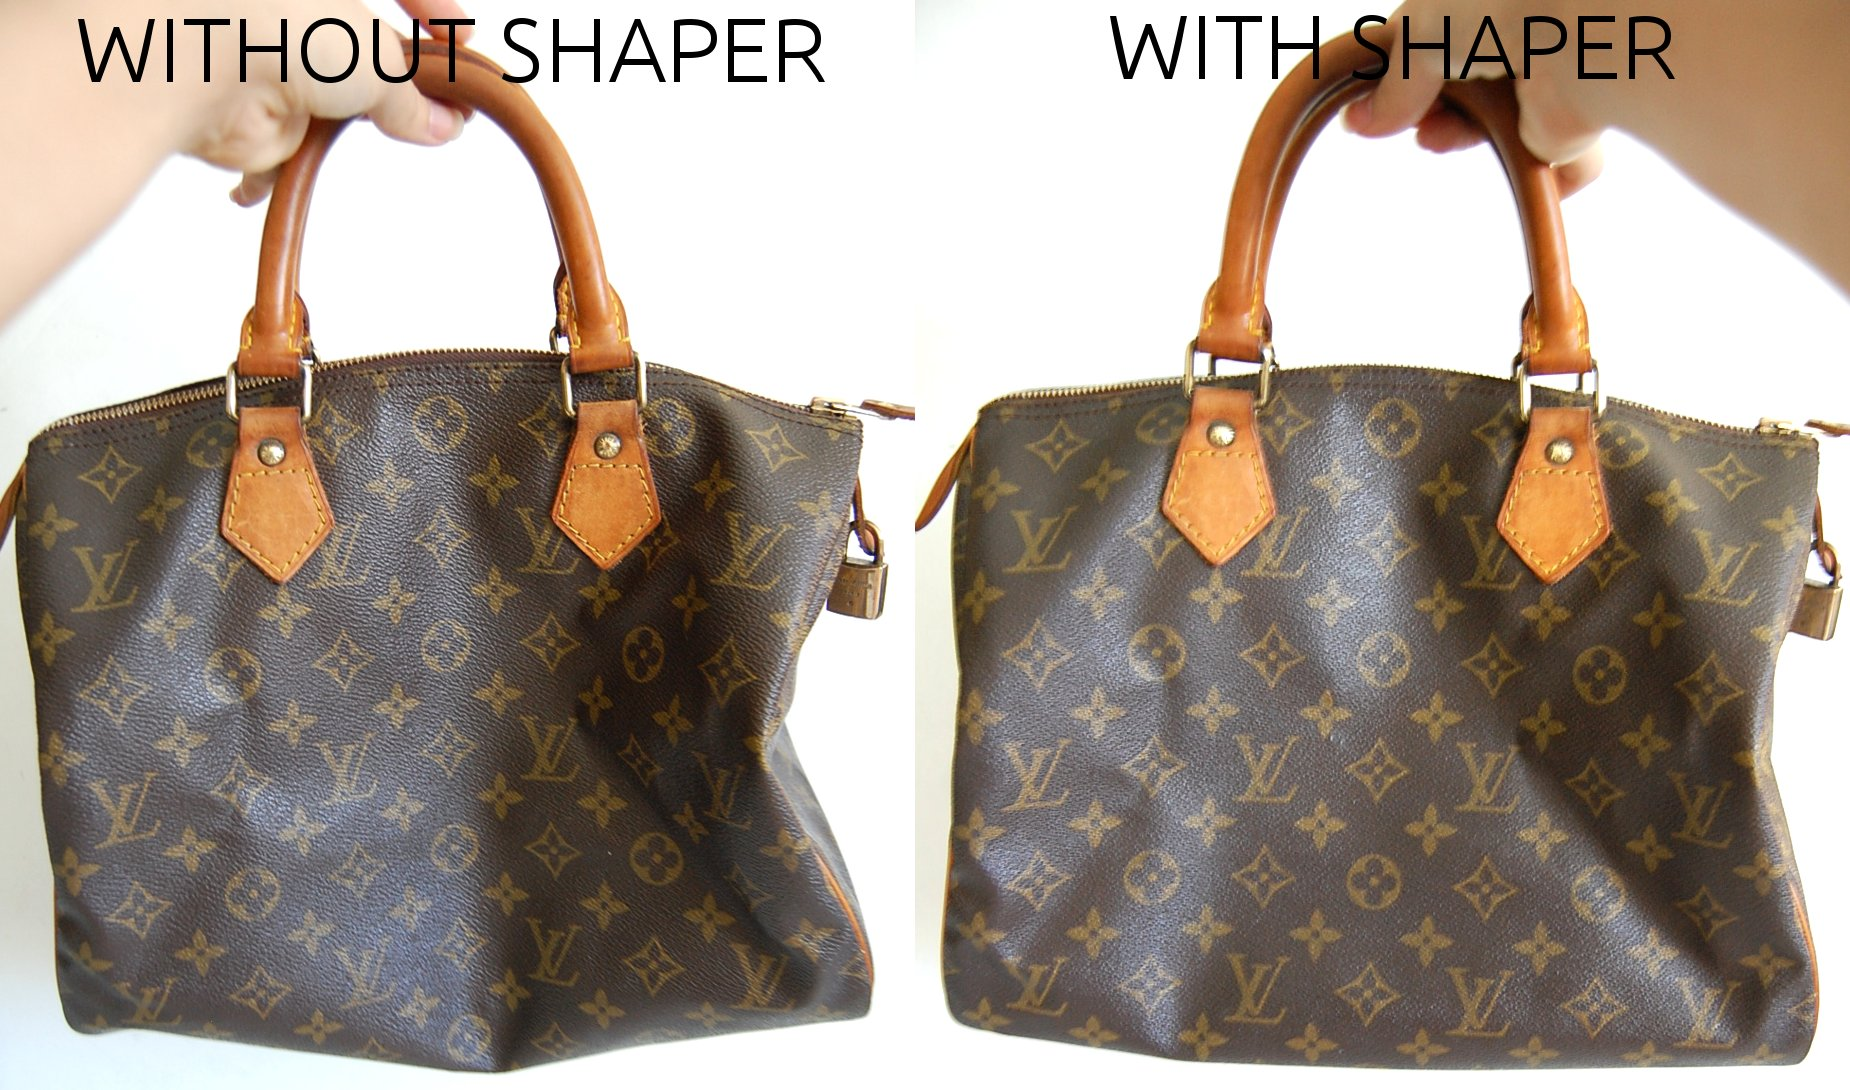 f5609725f9a36d speedy shaper form for bottom of bag to prevent sagginess louis vuitton